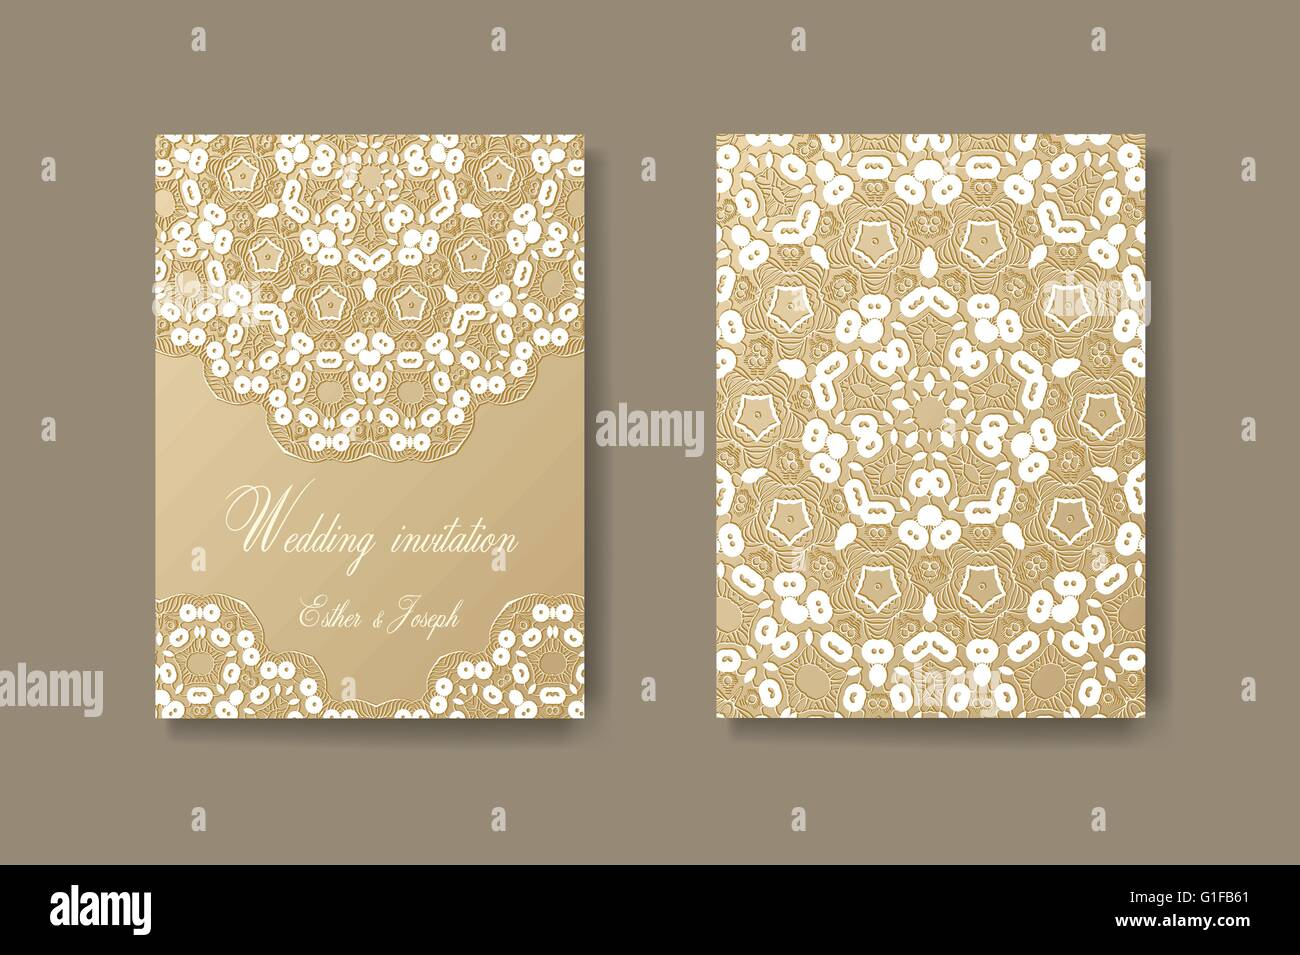 Wedding invitation decorated with white lace vector background wedding invitation decorated with white lace vector background divider header ornamental frame template flyer layout stopboris Images